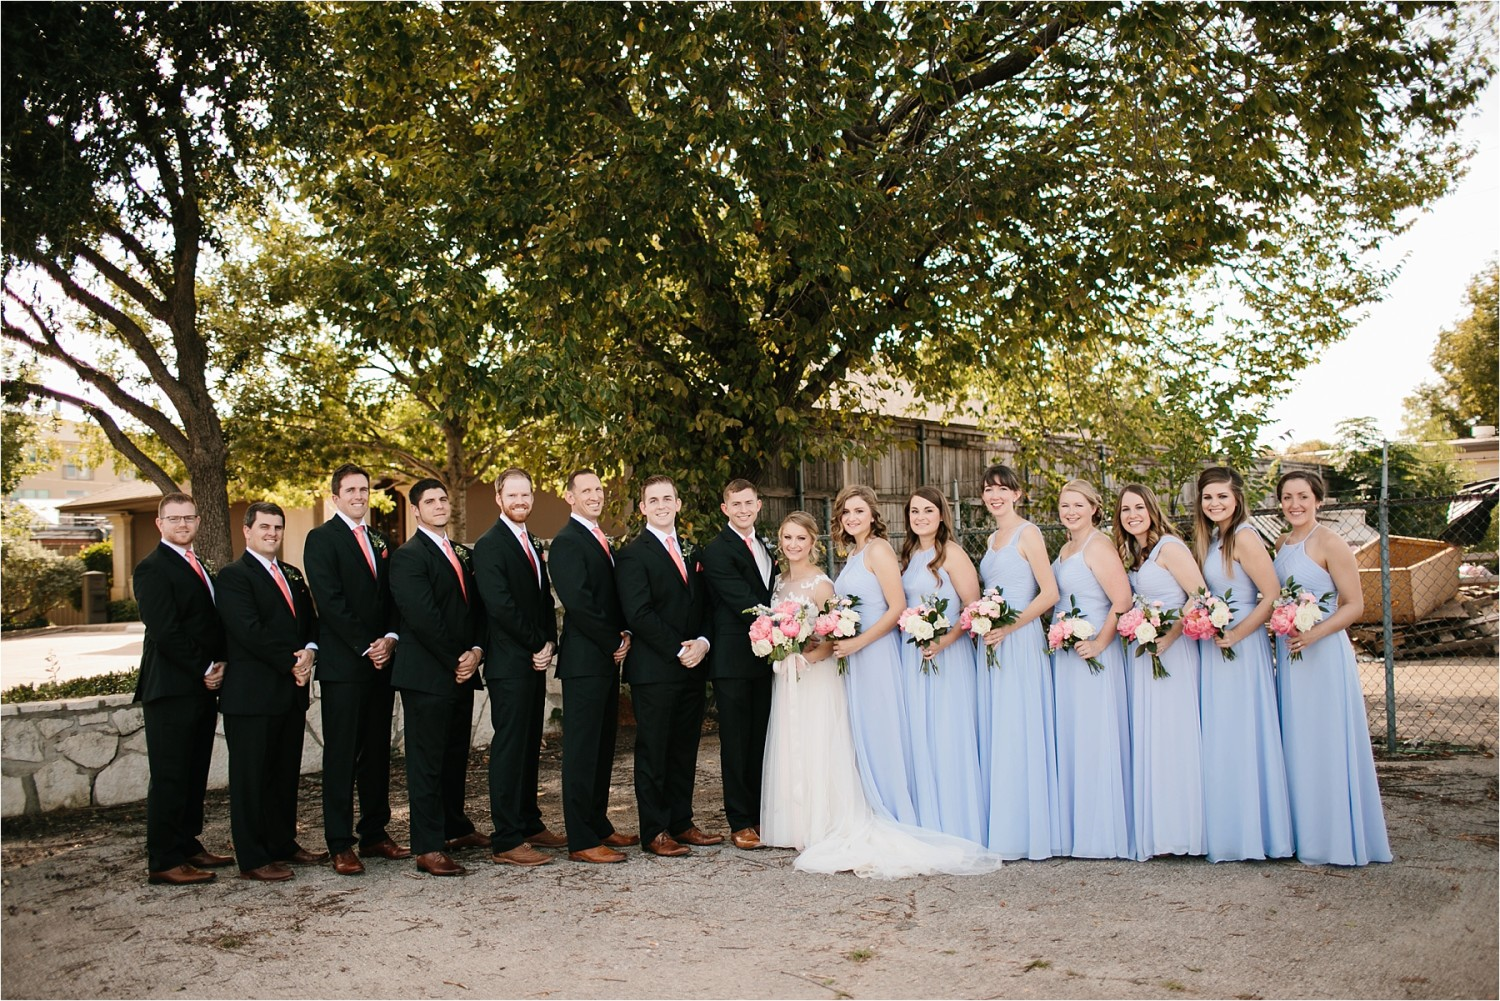 a-riffle-paper-co-inspired-color-pallete-wedding-at-mopac-event-center-in-fort-worth-tx-by-north-texas-wedding-photographer-rachel-meagan-photography-_-030